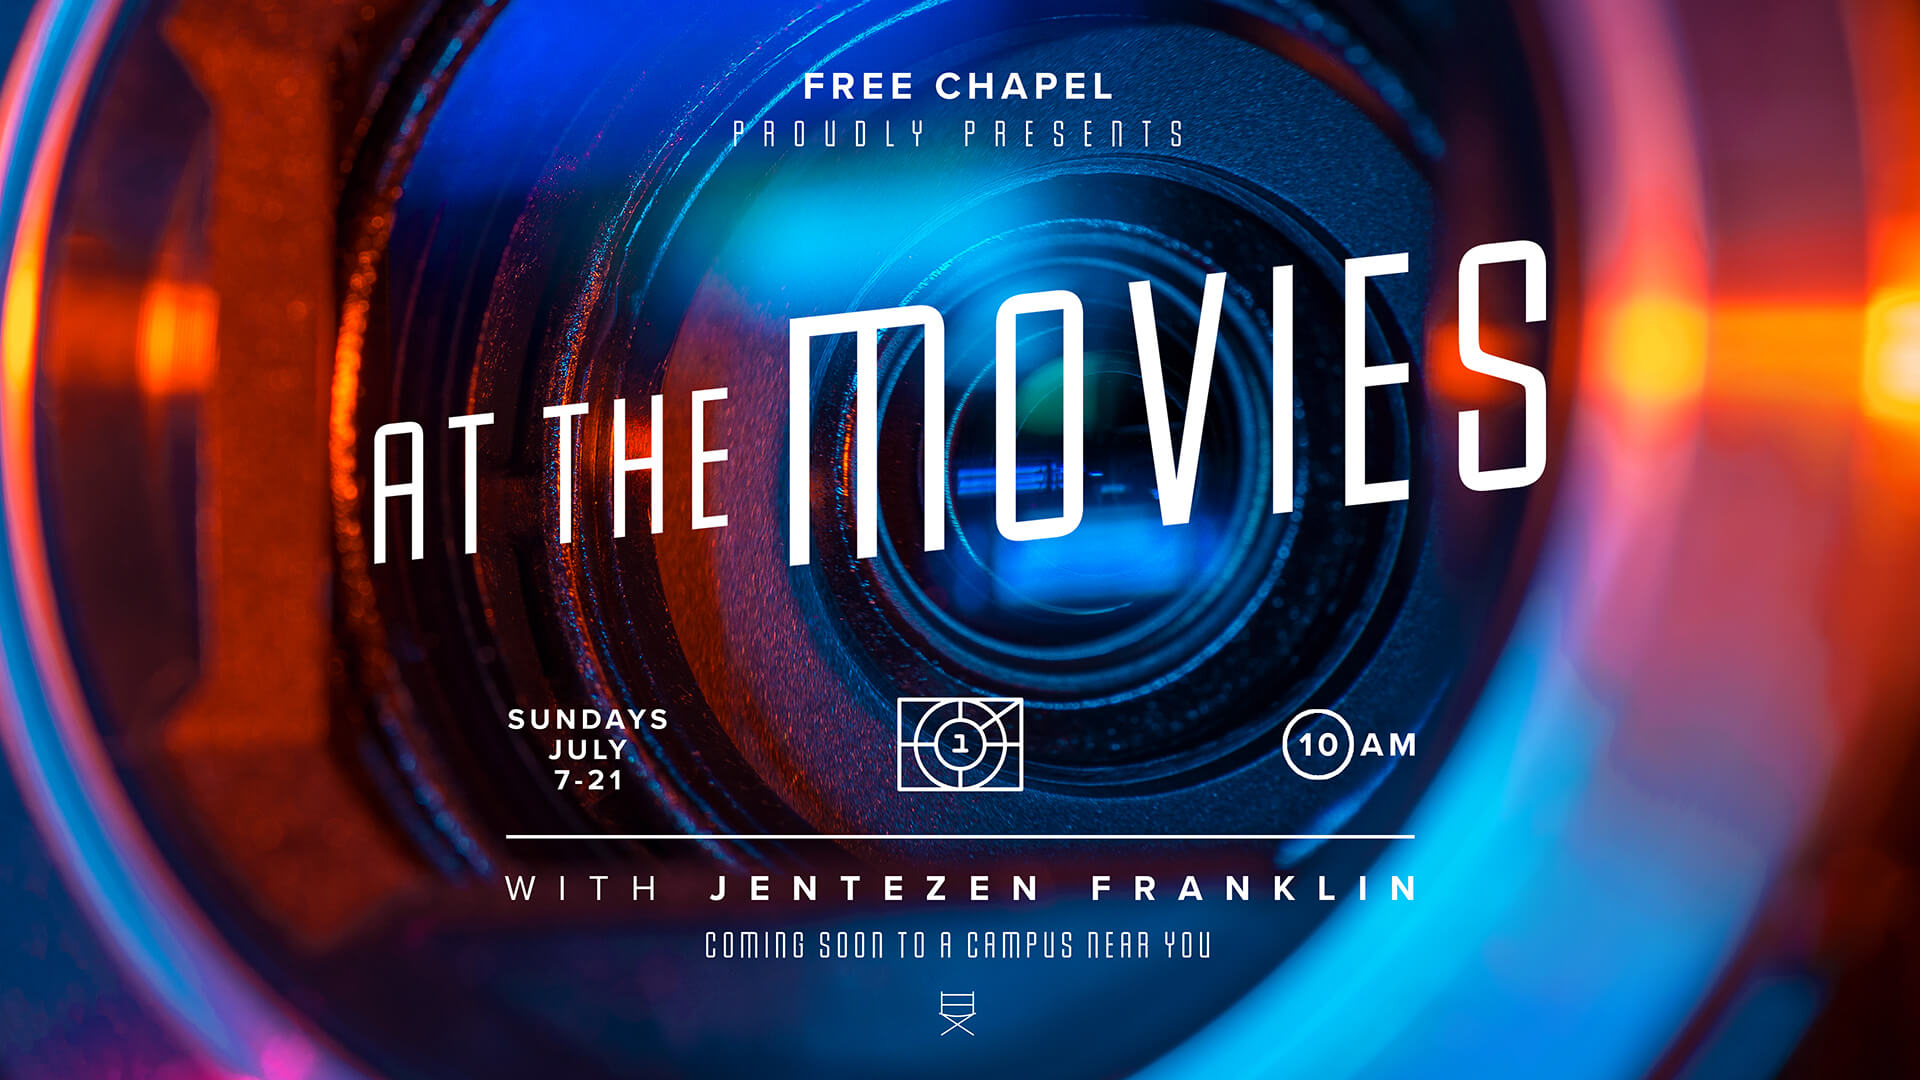 At The Movies at the Spartanburg campus